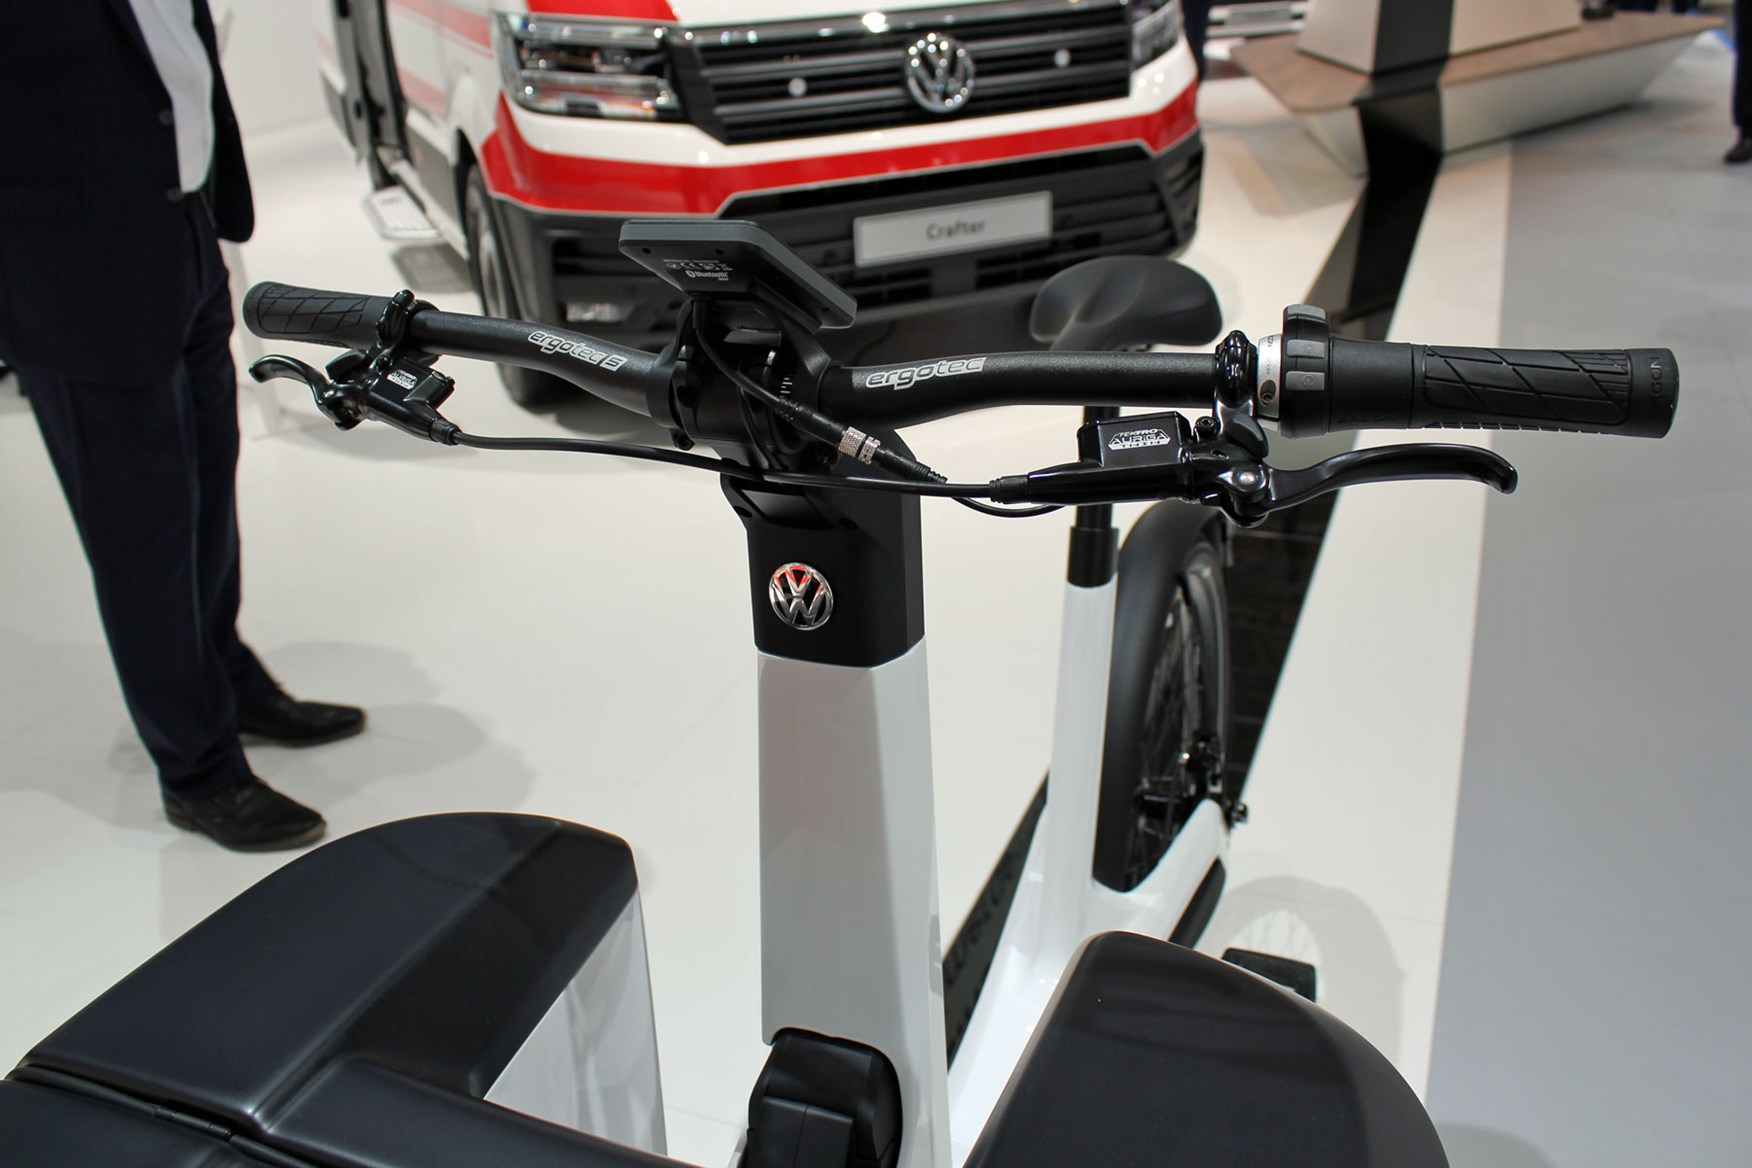 e9b254be5c6 ... VW Cargo e-Bike at the IAA 2018 - Volkswagen badge and handle bars ...